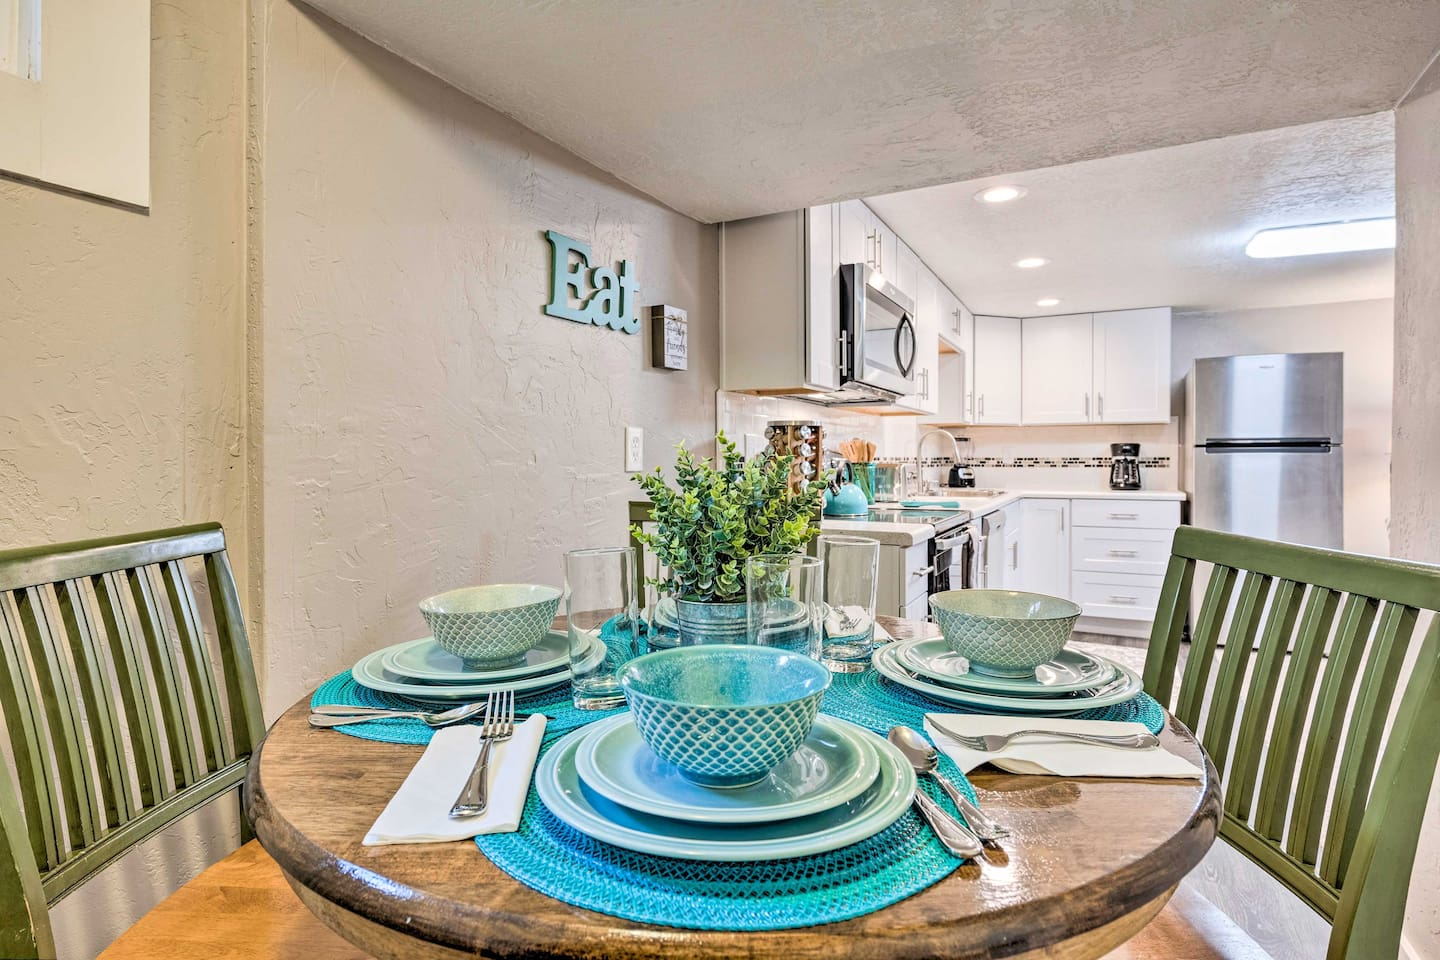 Dine at the charming 4-person kitchen table.